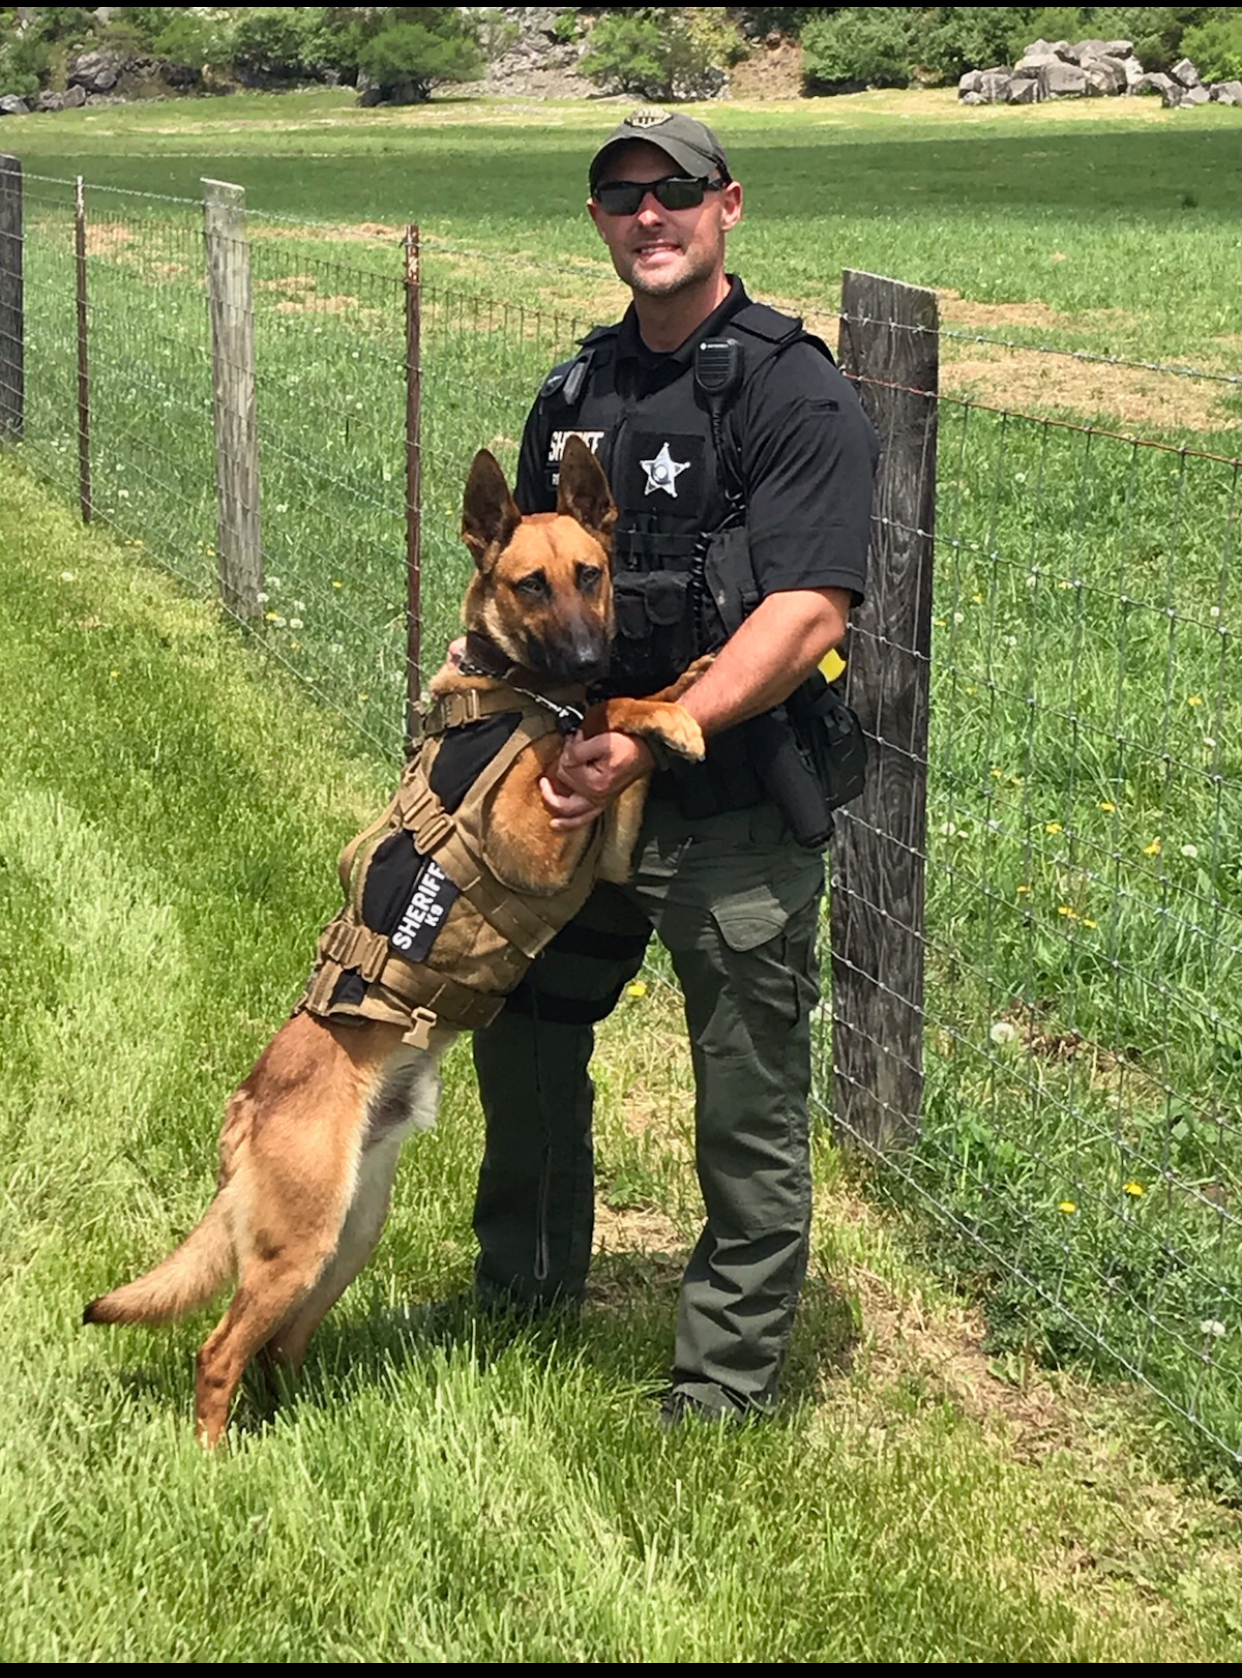 Reynolds and K-9 Rico